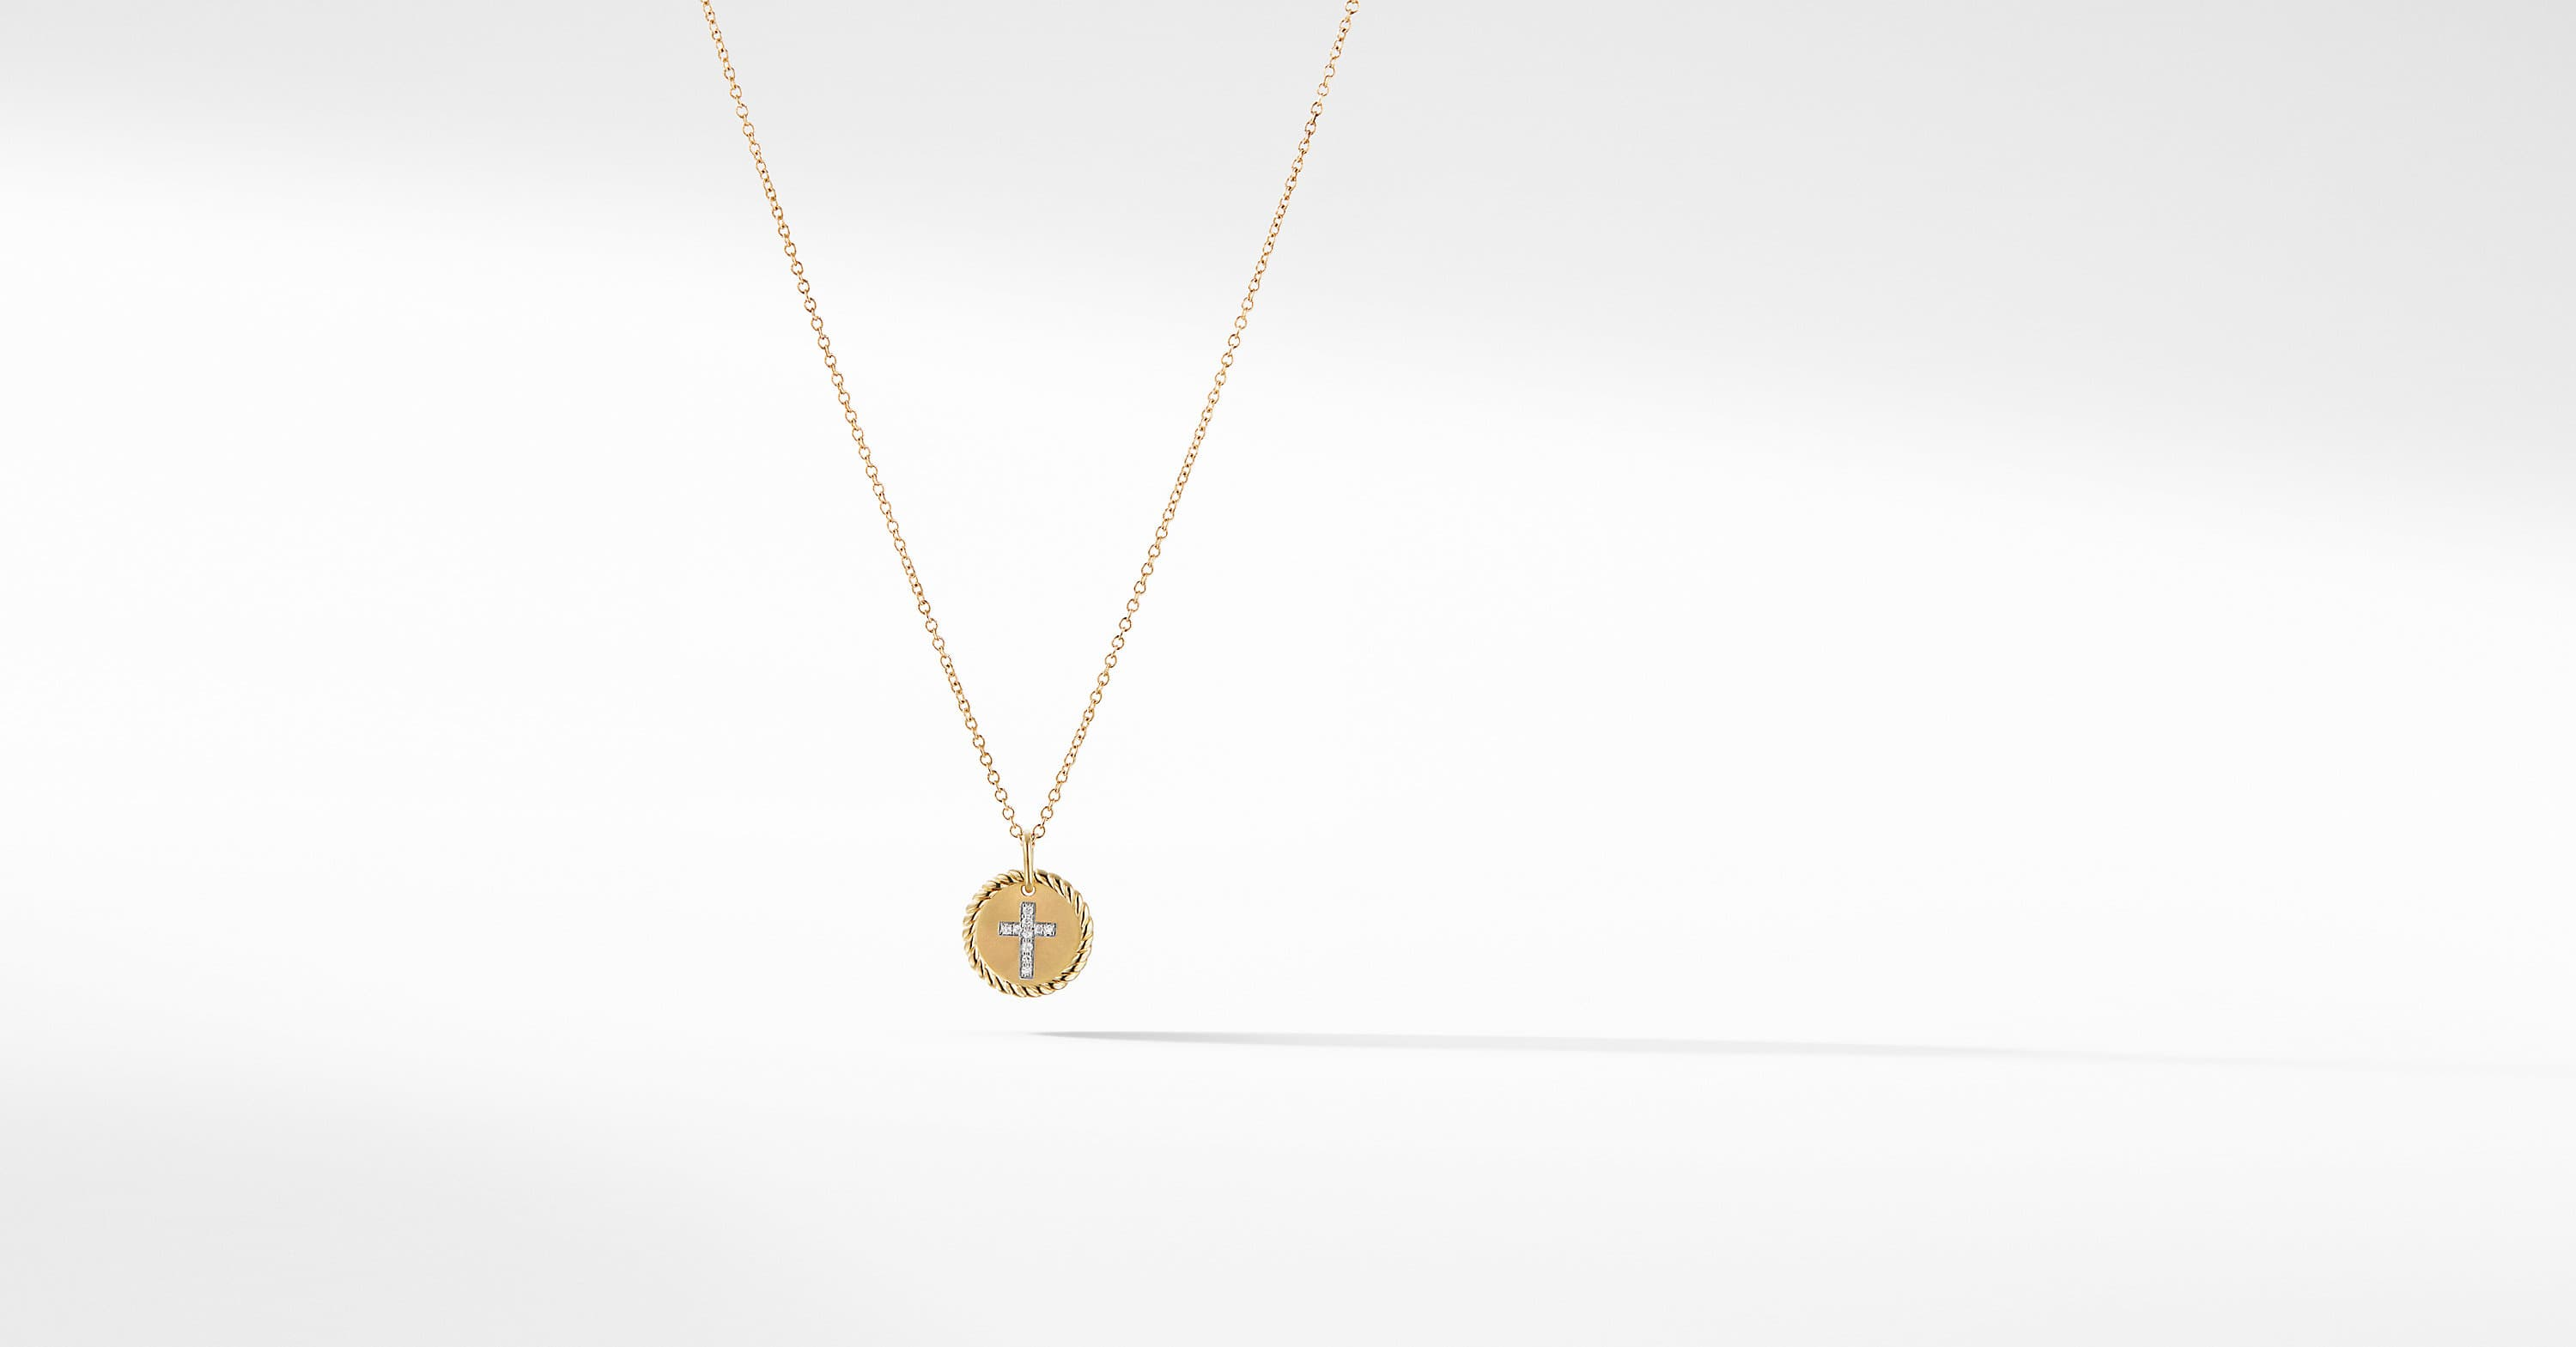 Cable Collectible Cross Necklace with Diamonds in 18K Gold